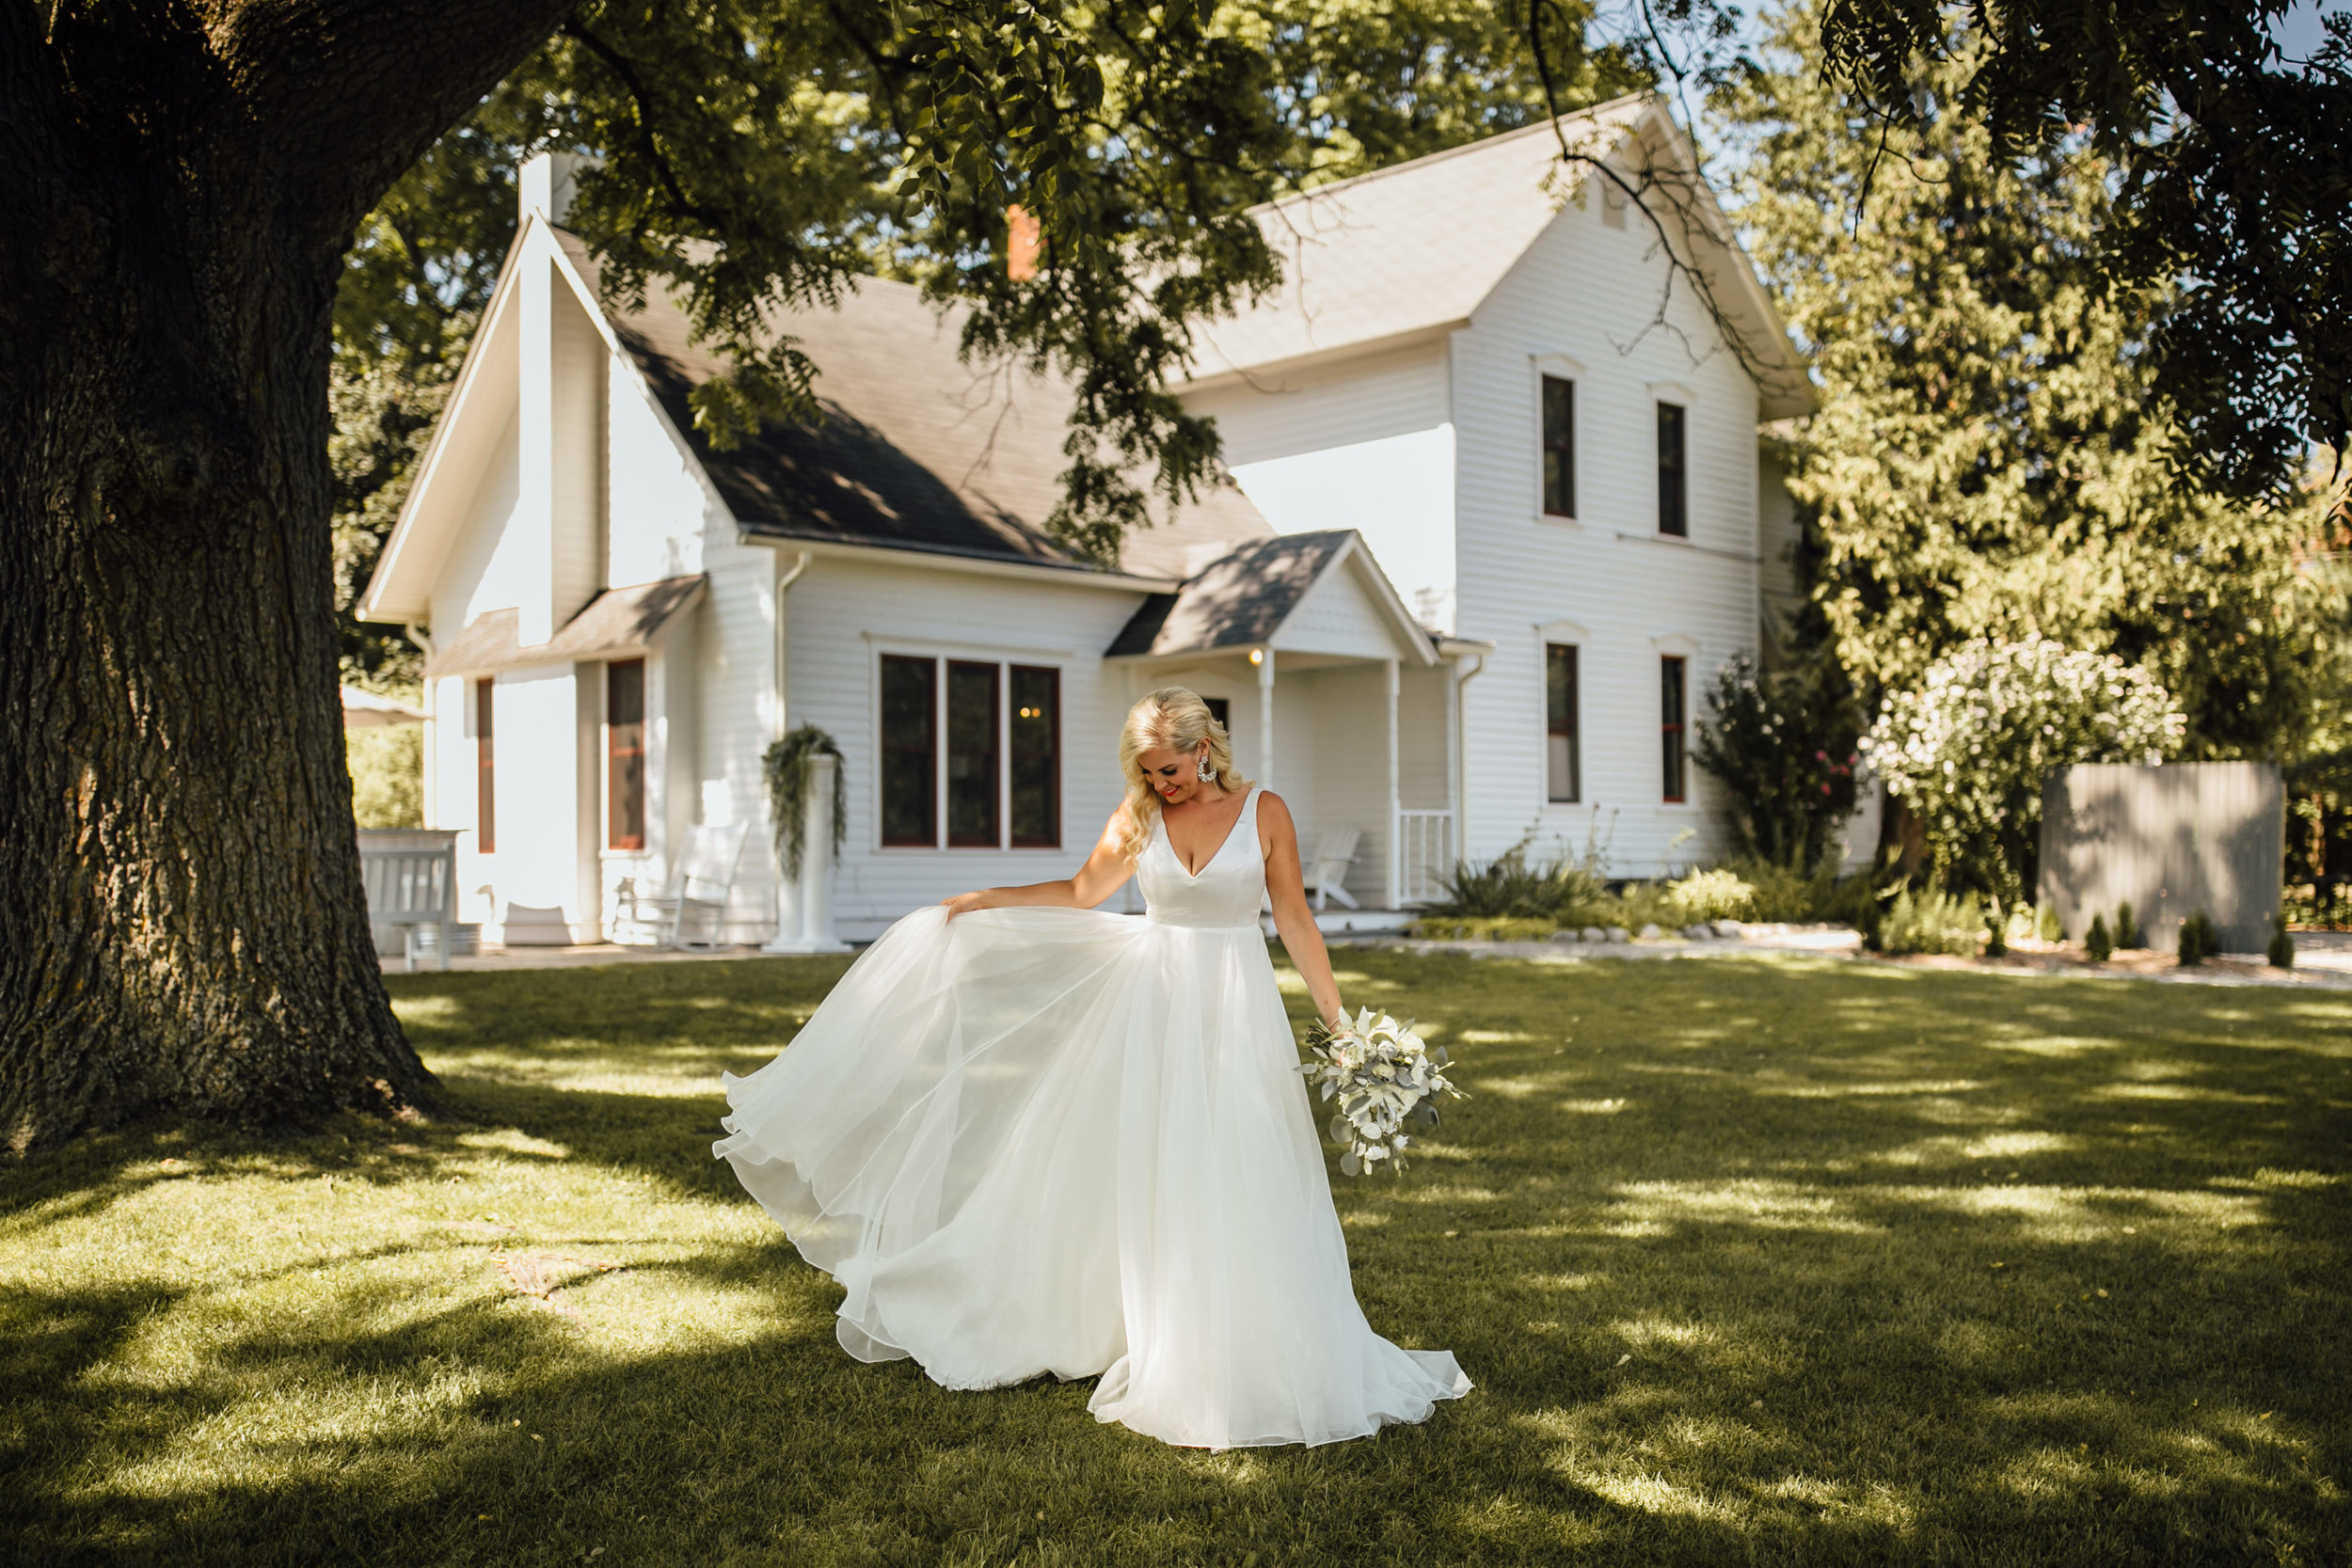 2018-8-Chelsea-Rich-Portraits-Aurora-Cellars-Traverse-City-Wedding-Michigan-Wedding-Photographer-101.jpg